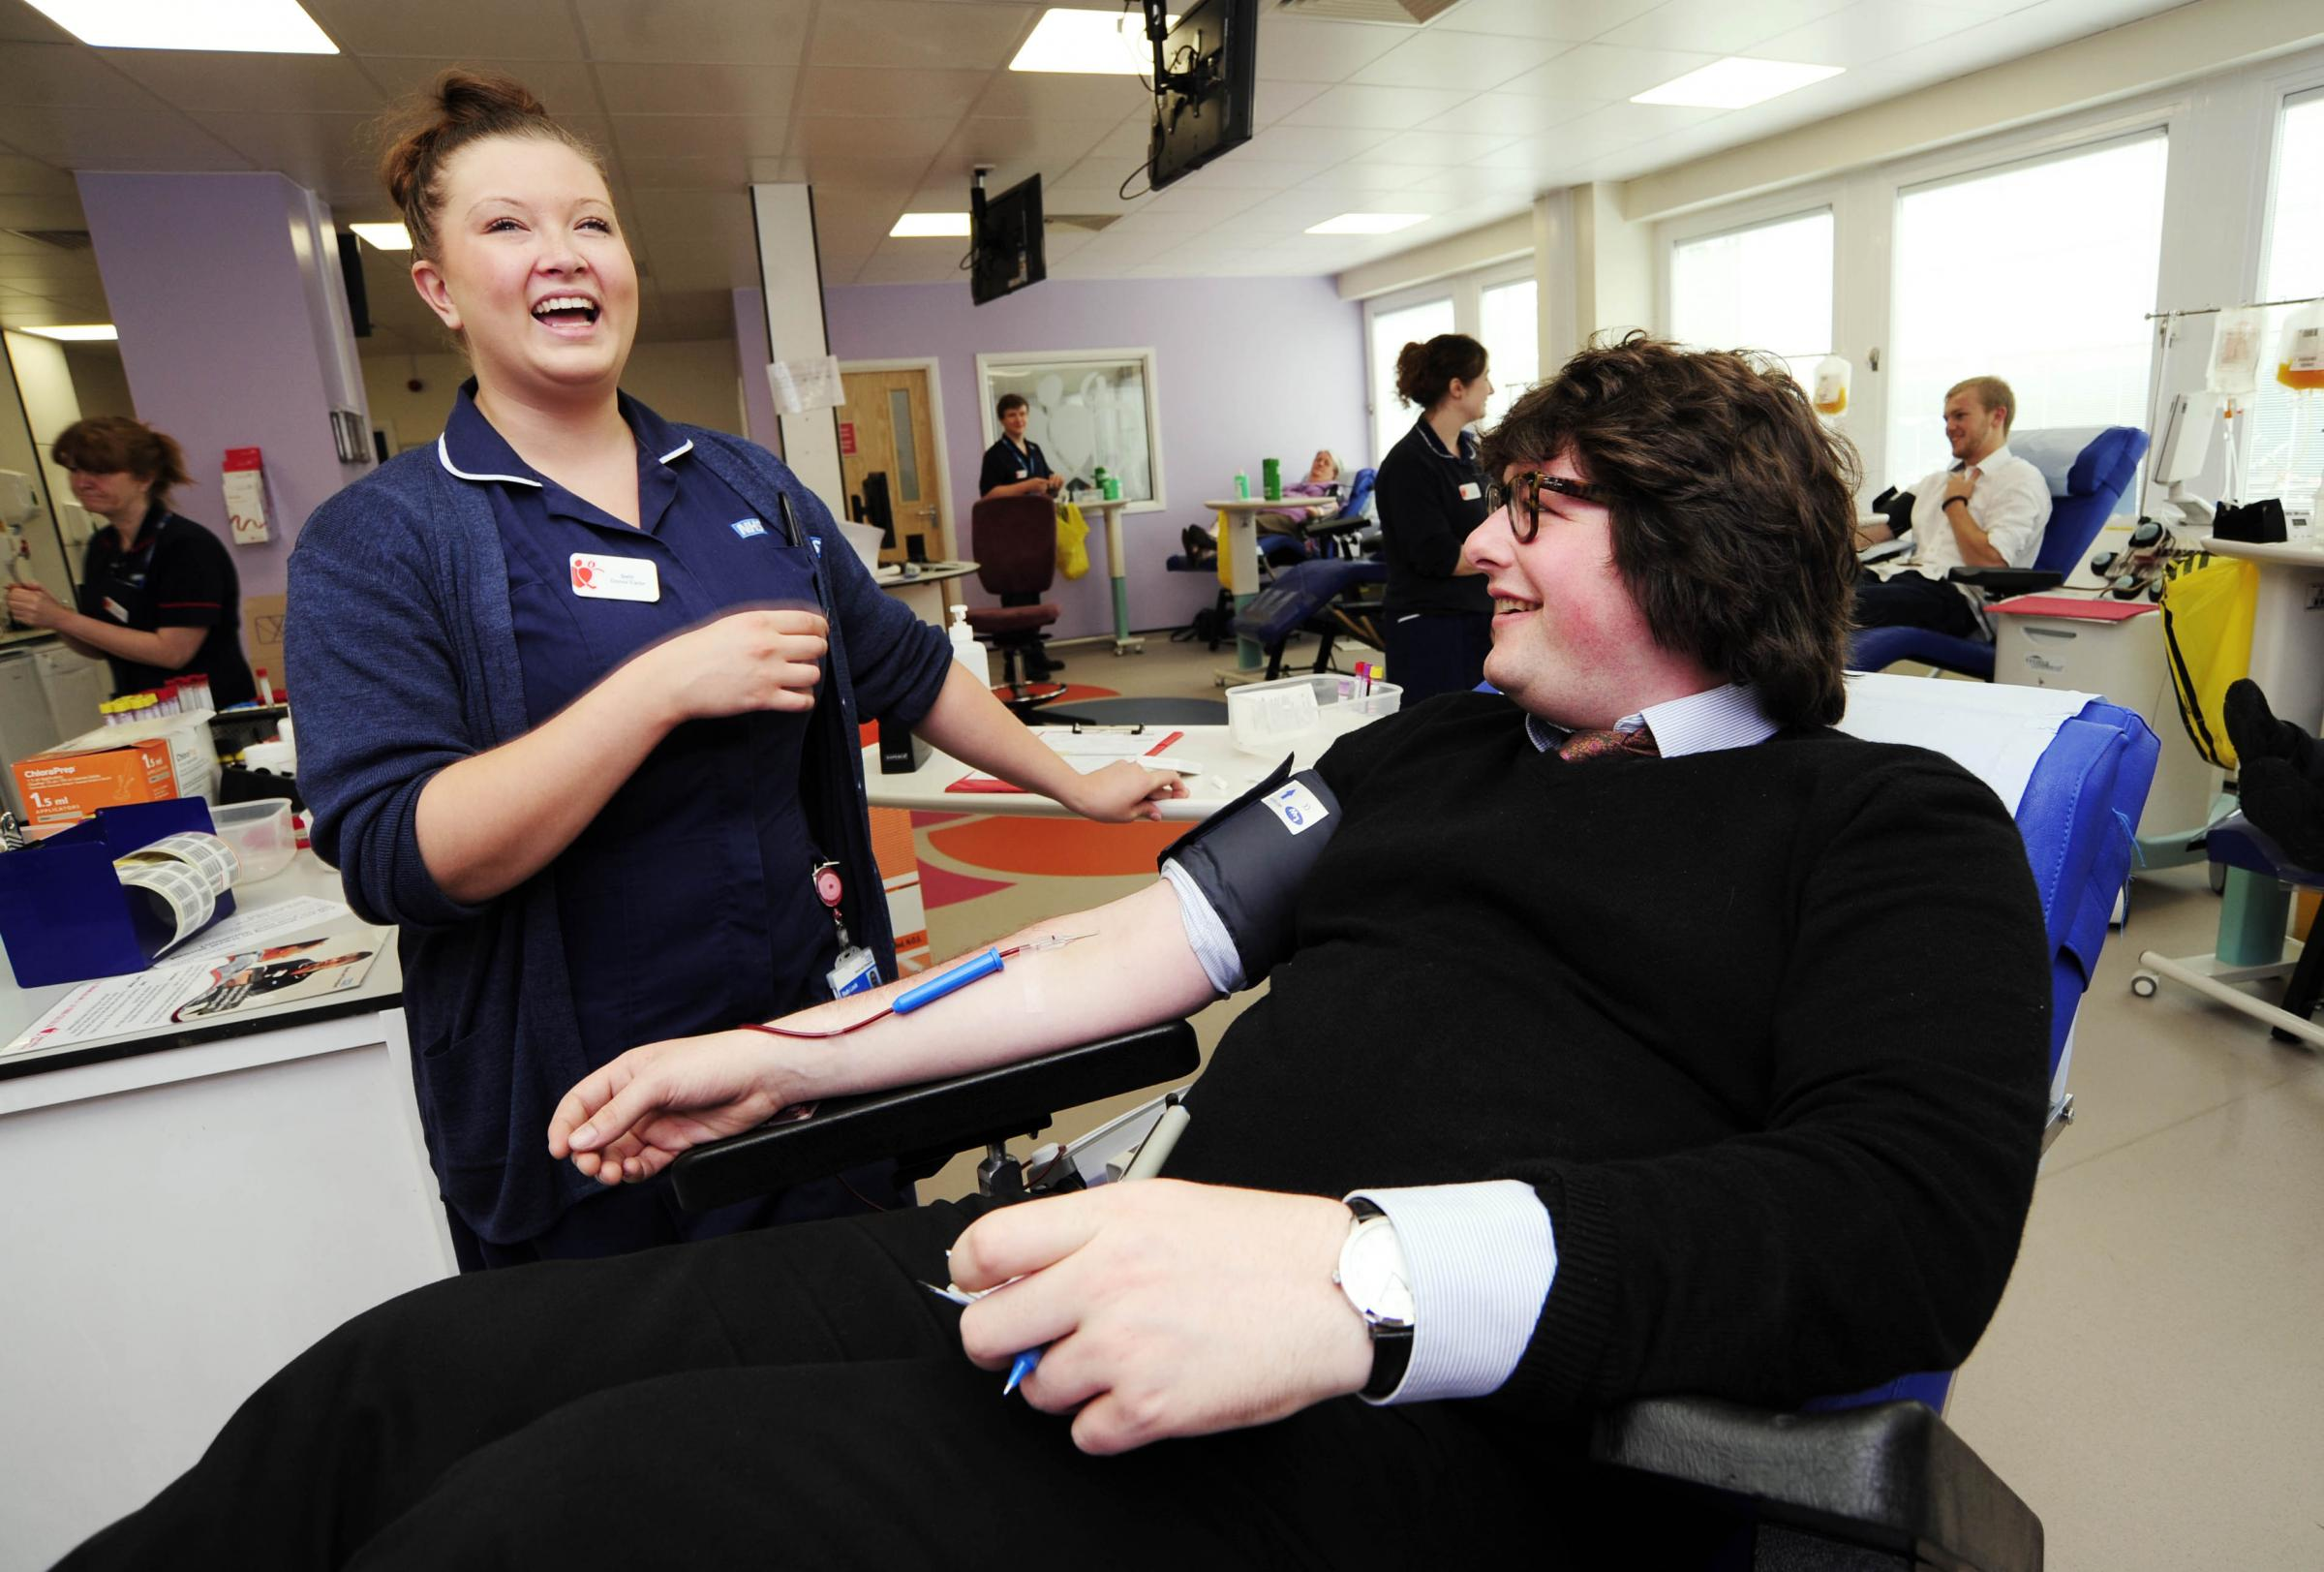 Former Oxford Mail reporter Alex Regan giving blood under the care of Beth Lock. Picture: David Fleming